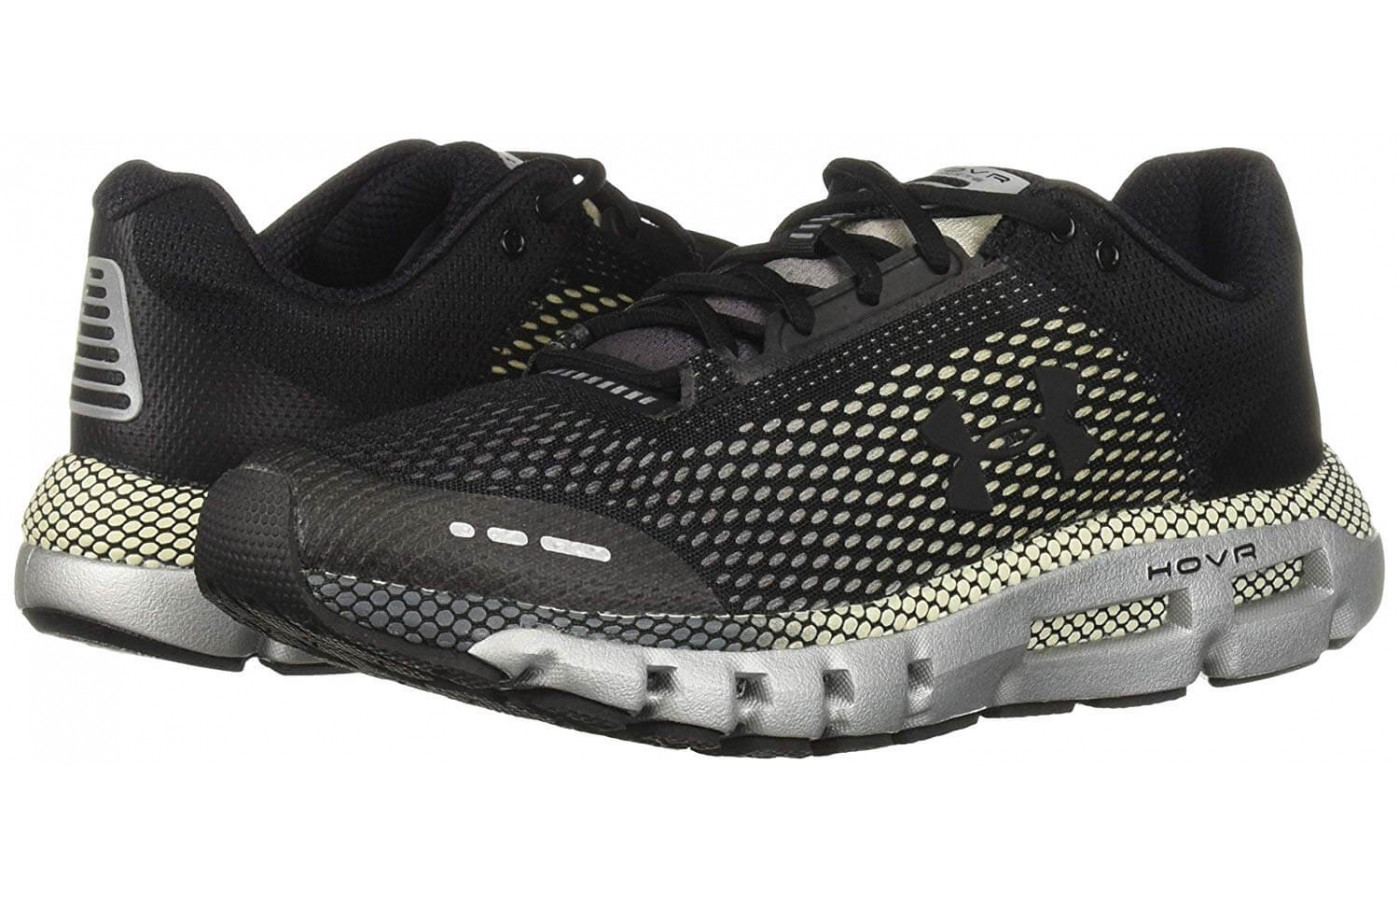 Under Armour Men's HOVR Infinite pair